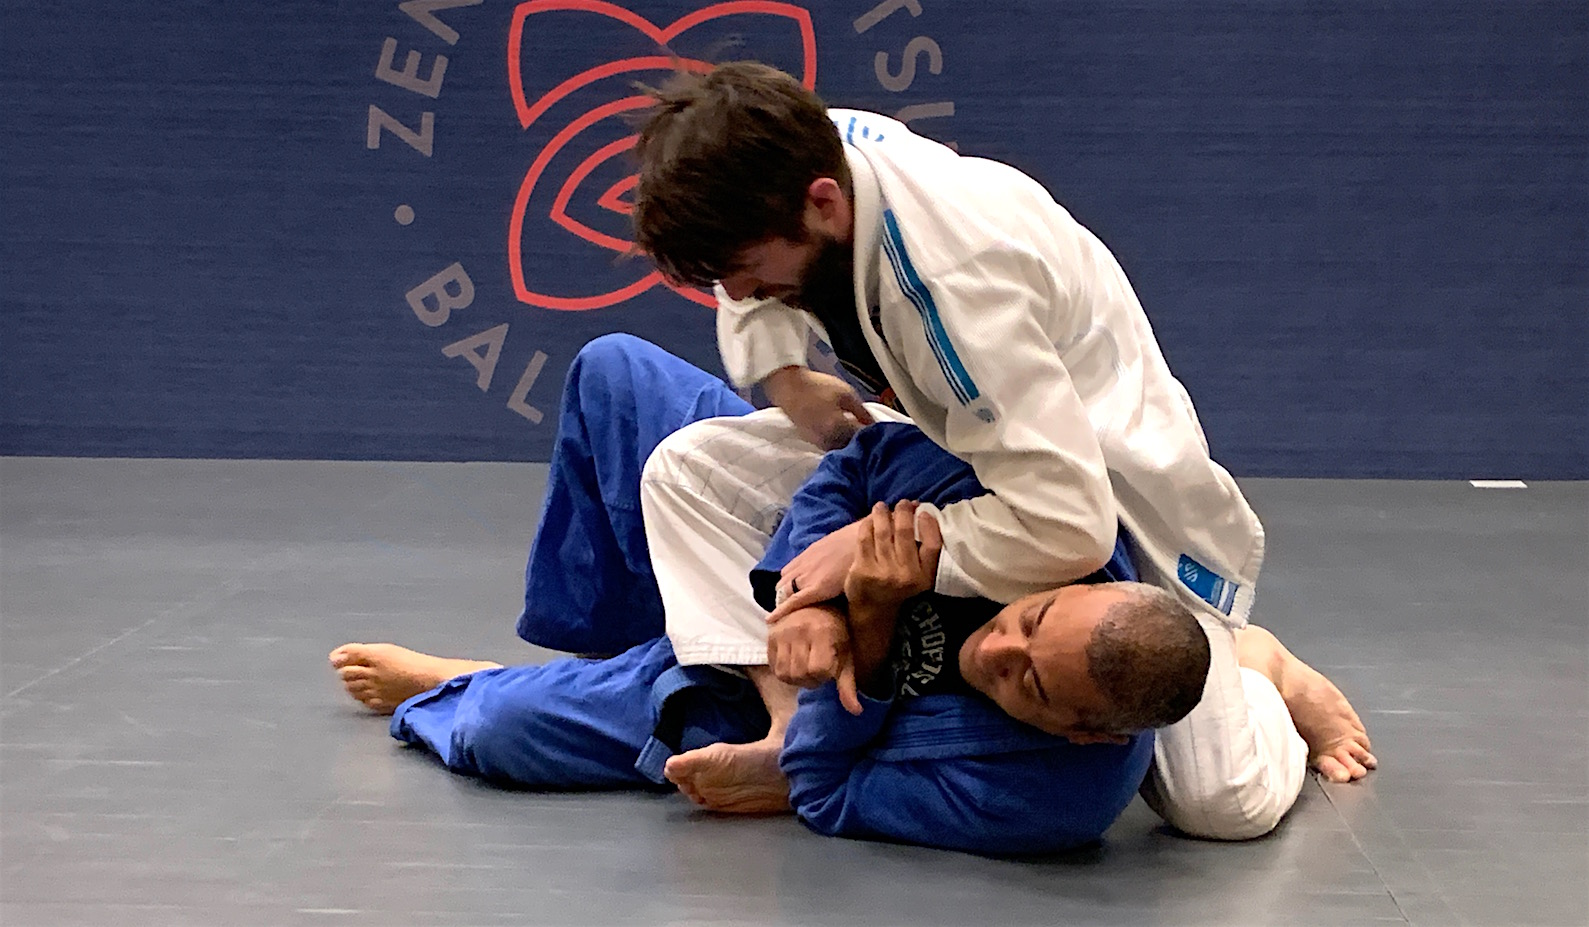 Zenyo Jiu Jitsu Baltimore Advanced Training